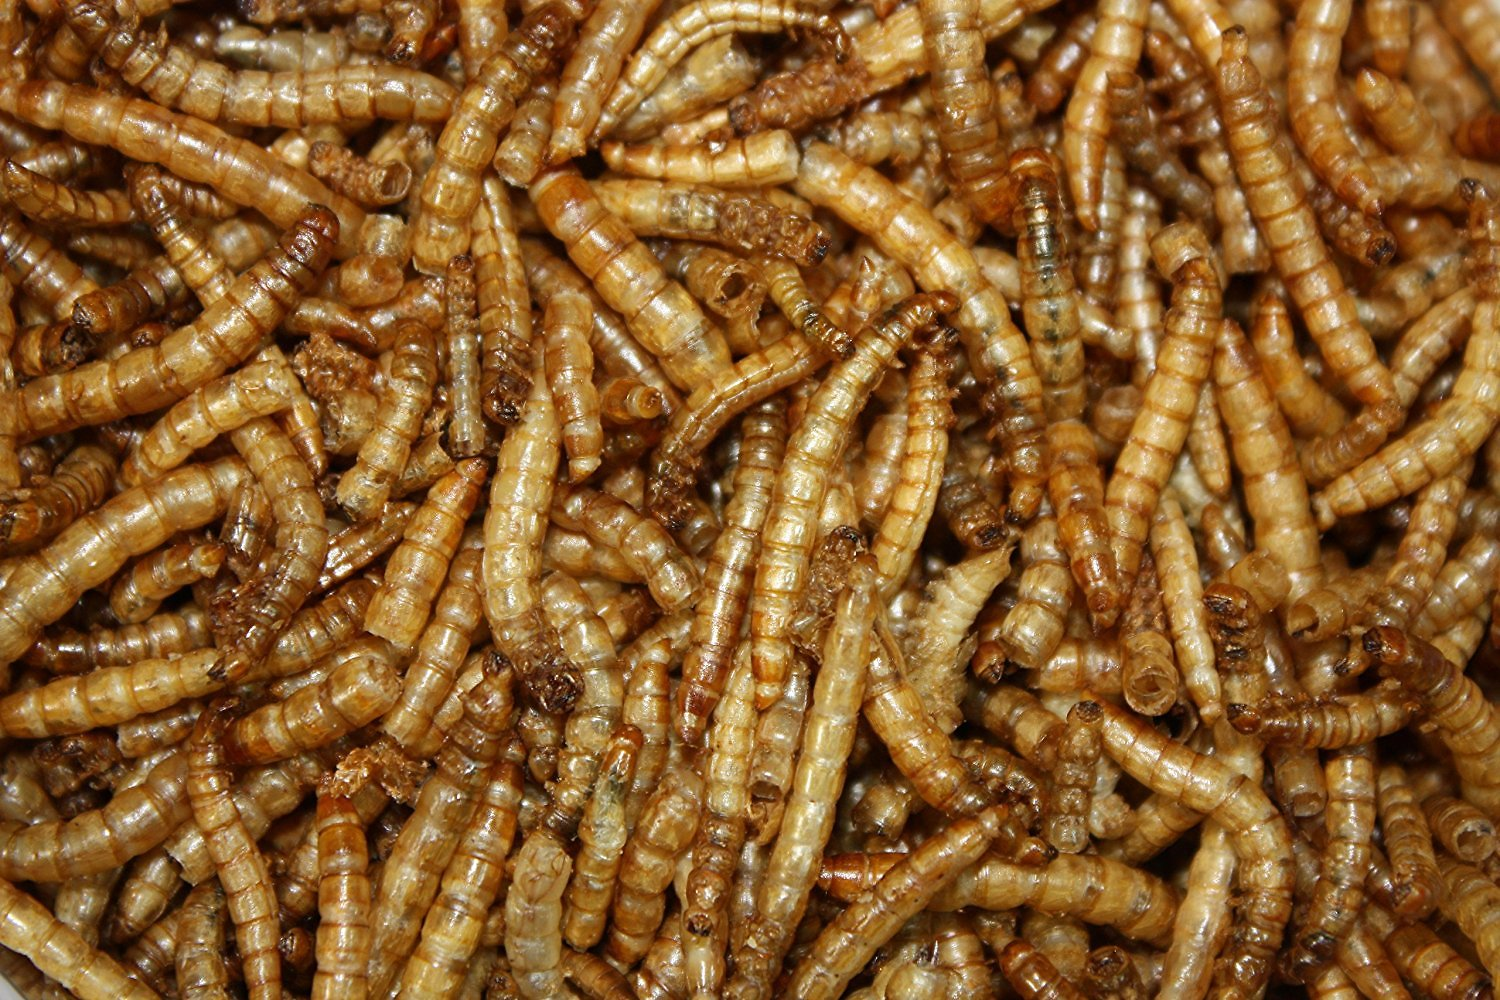 Worms In Dog Food